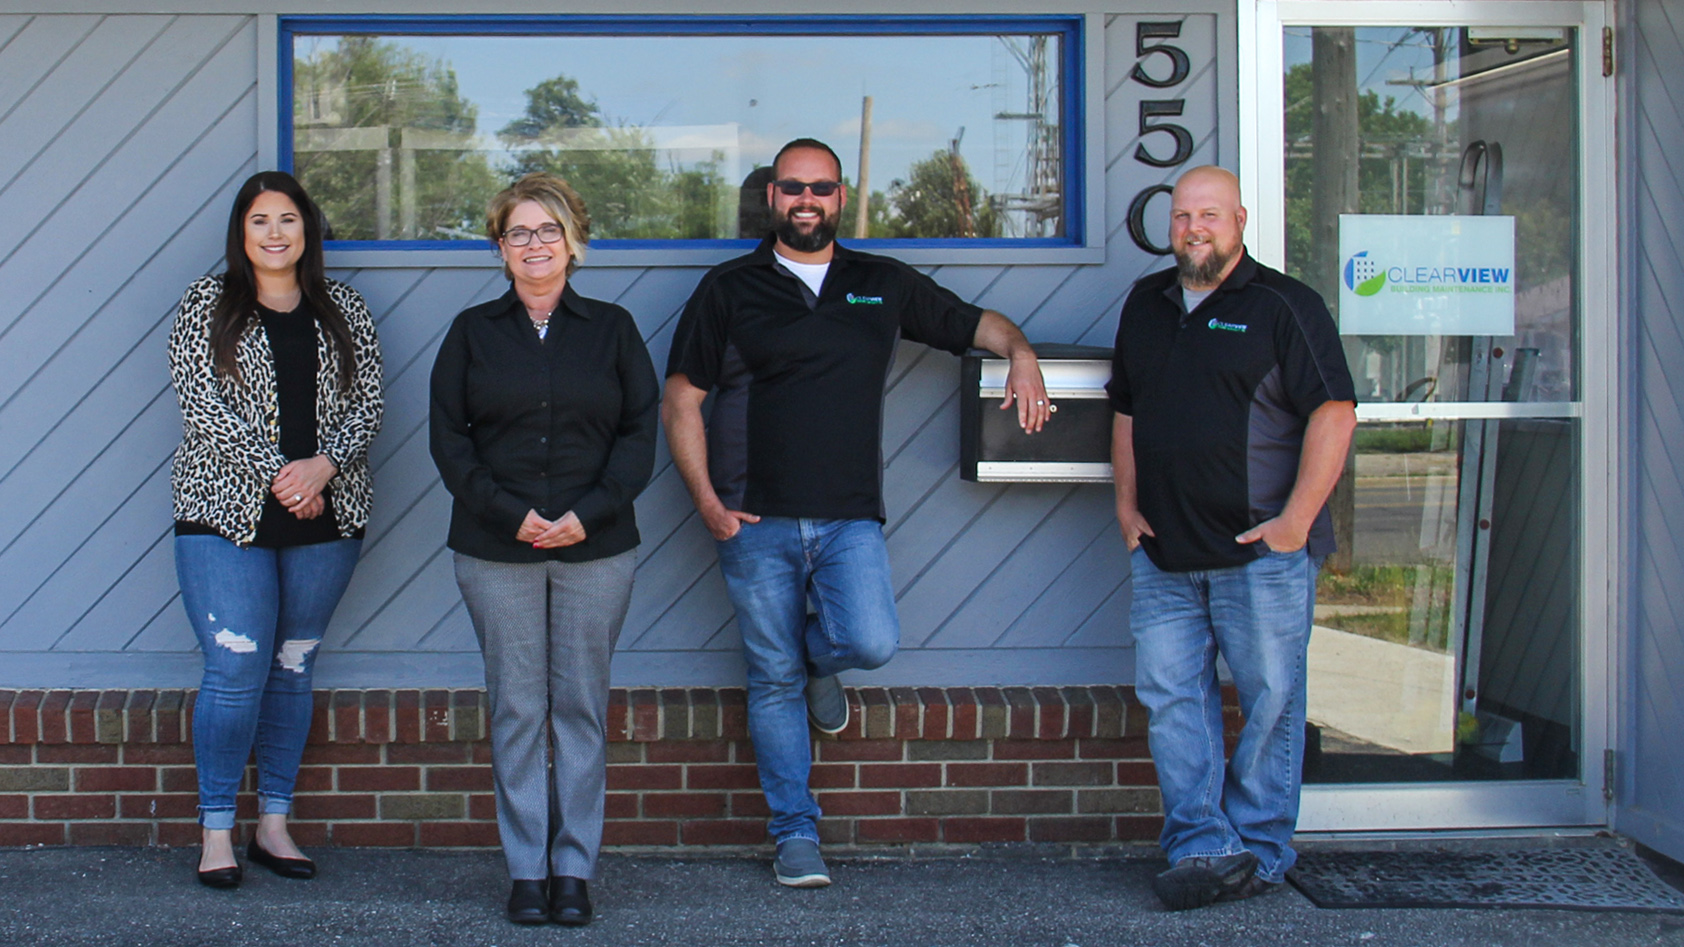 Owner and President Dena Craine and staff outside Clearview office